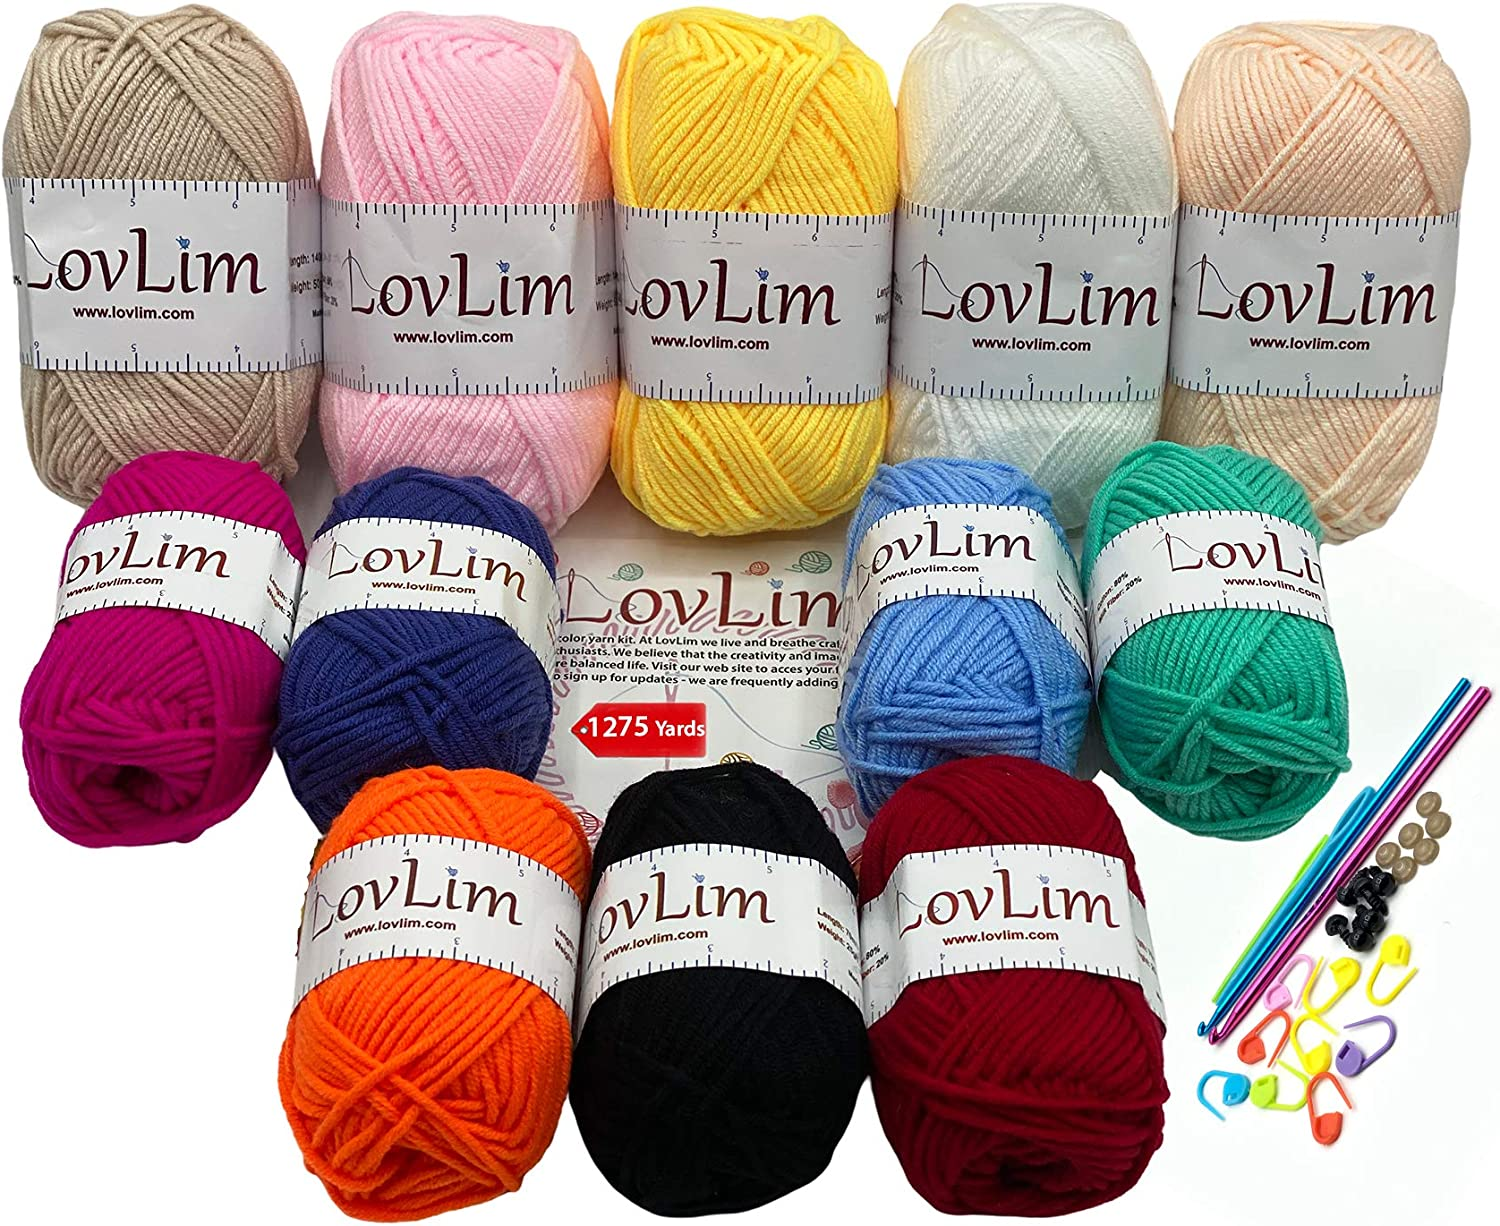 LovLim Crochet Yarn kit, 12 Soft Cotton Yarn Skeins for Crochet and Knitting, Free Patterns for Crochet/Amigurumi, 1275 Yards Craft DK Yarn, Perfect Starter kit